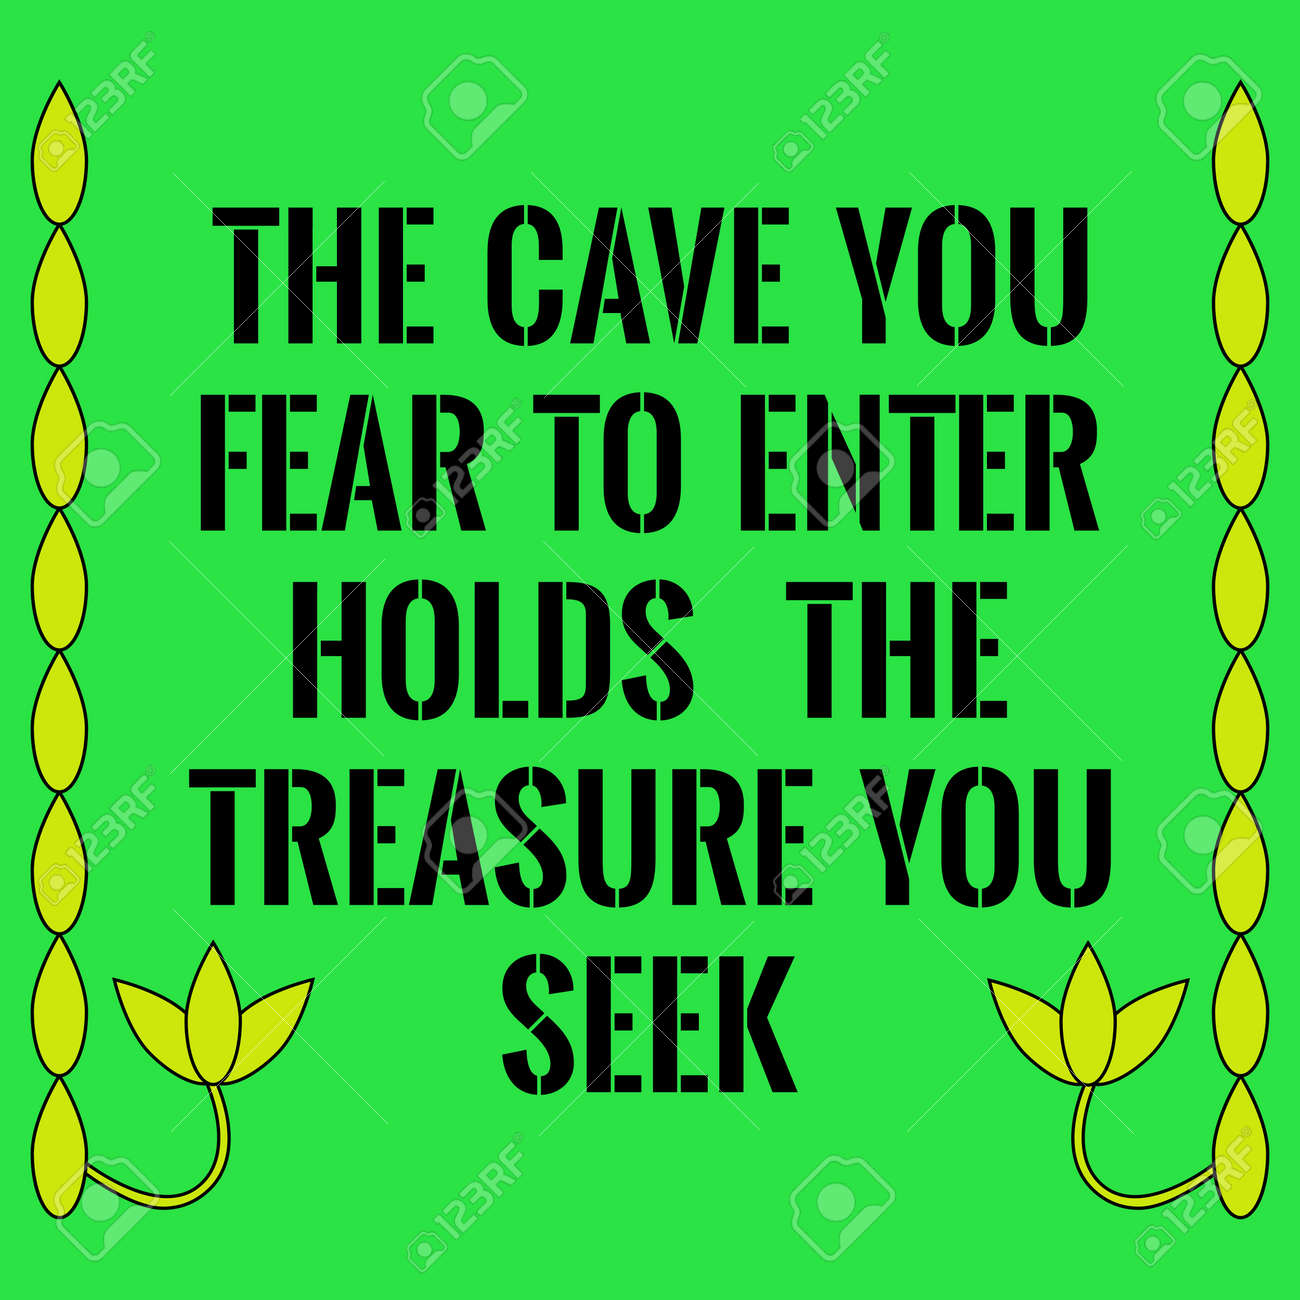 Motivational quote. The cave you fear to enter holds the treasure you seek. On green background. - 67516801